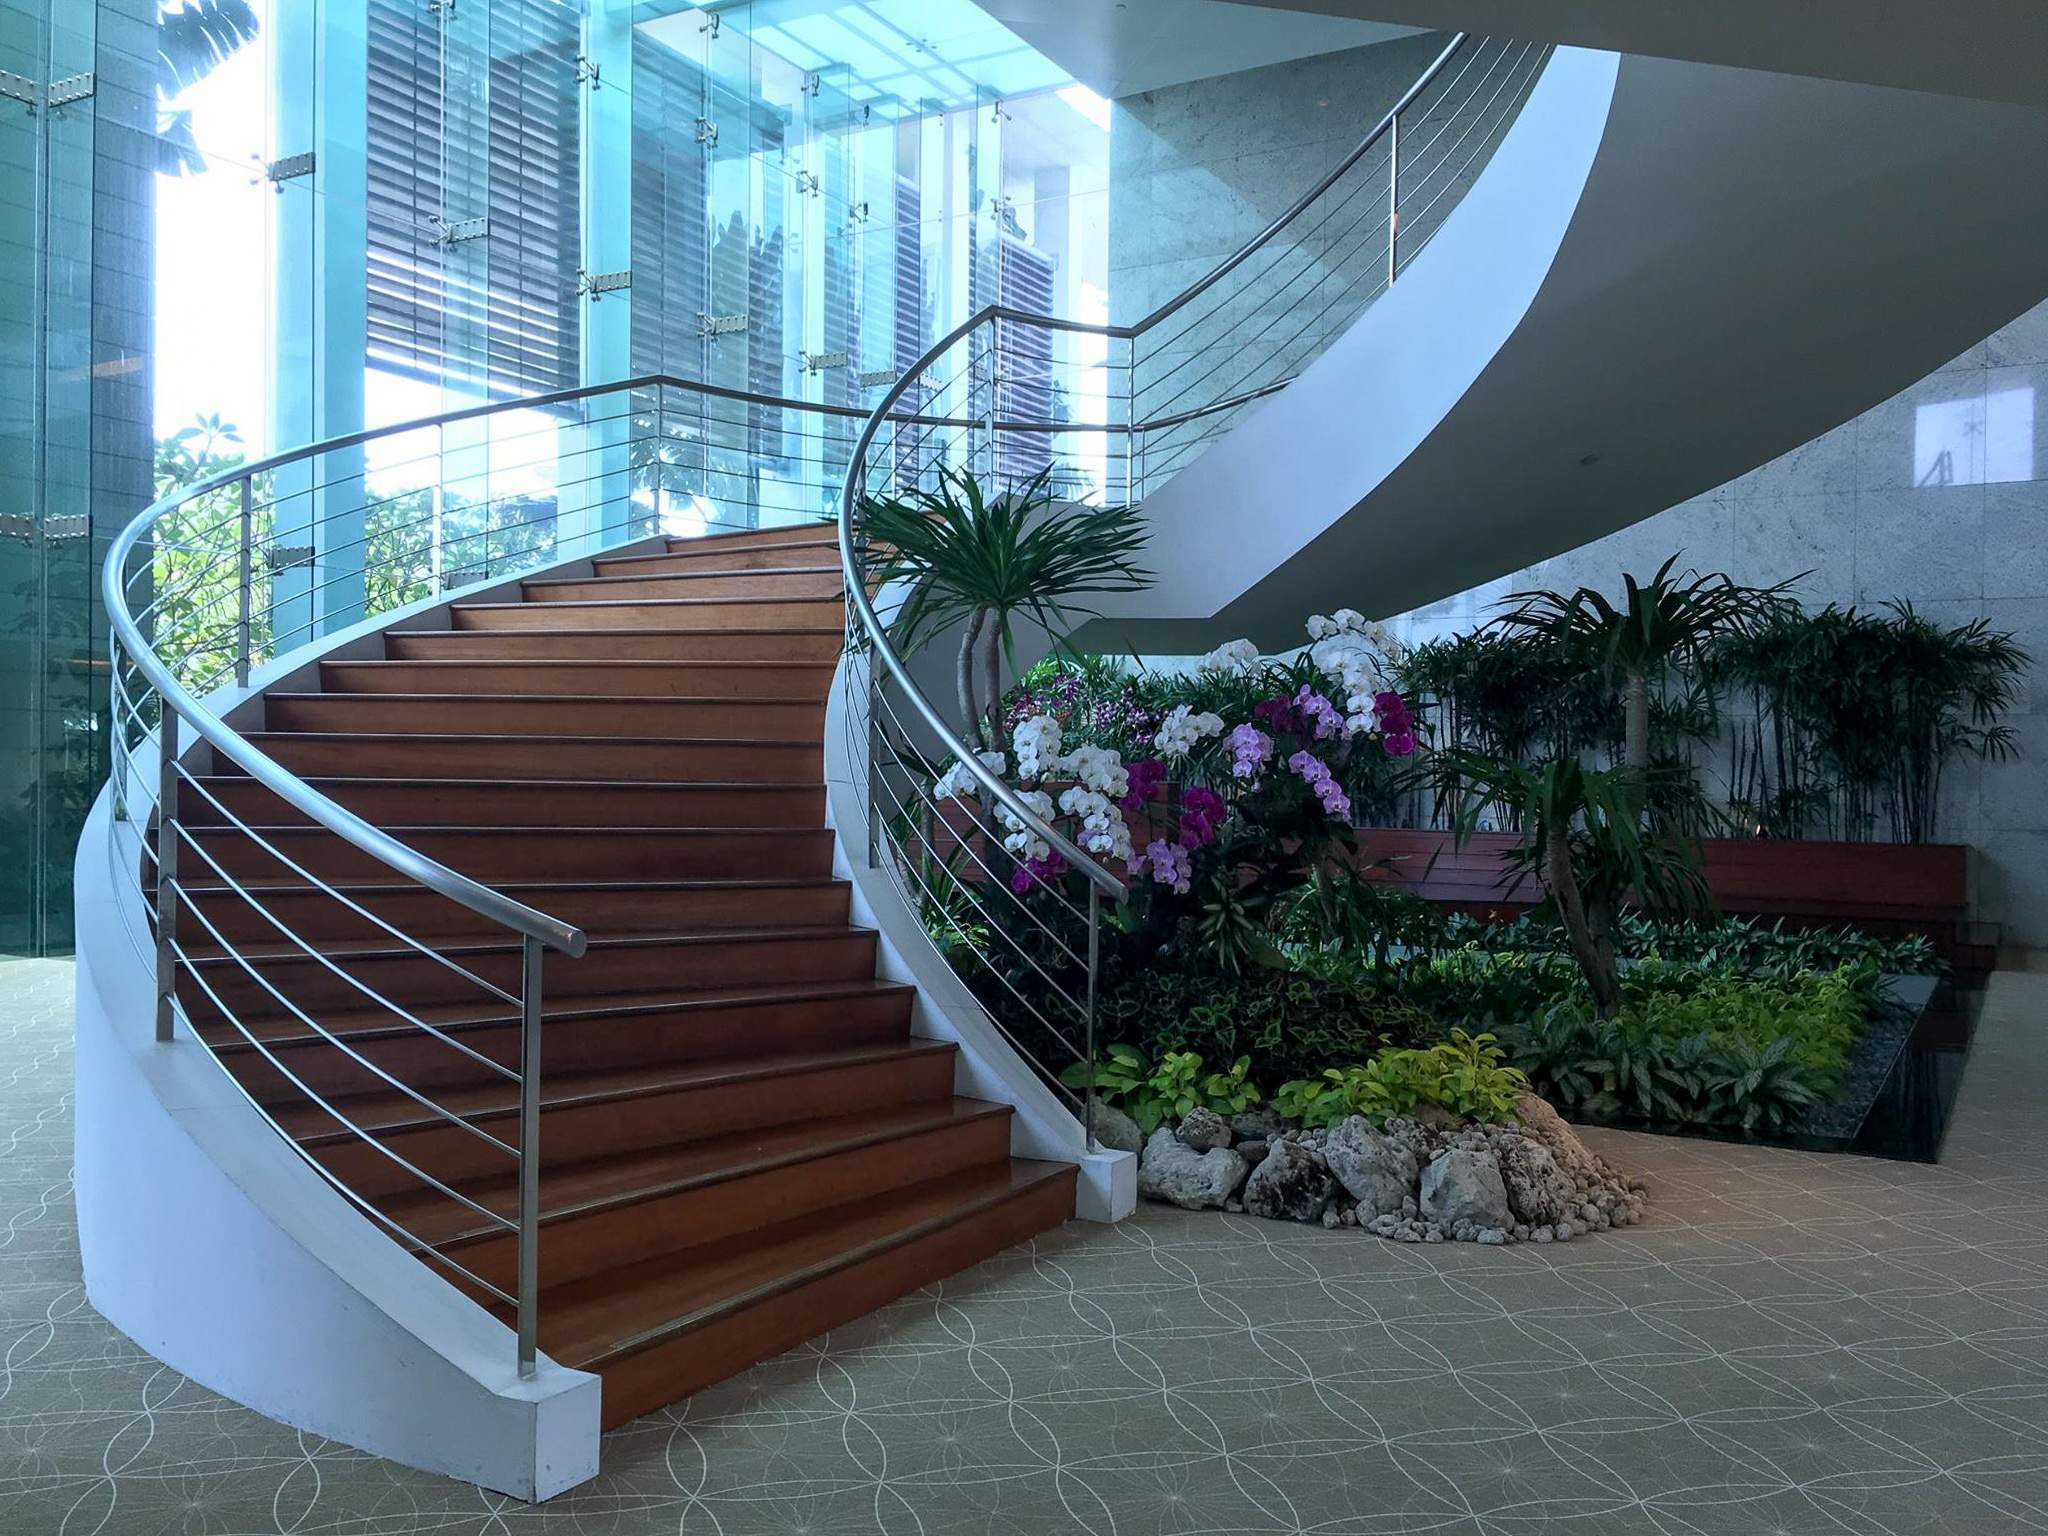 P & A Link Pte Ltd is a commercial interior design Singapore